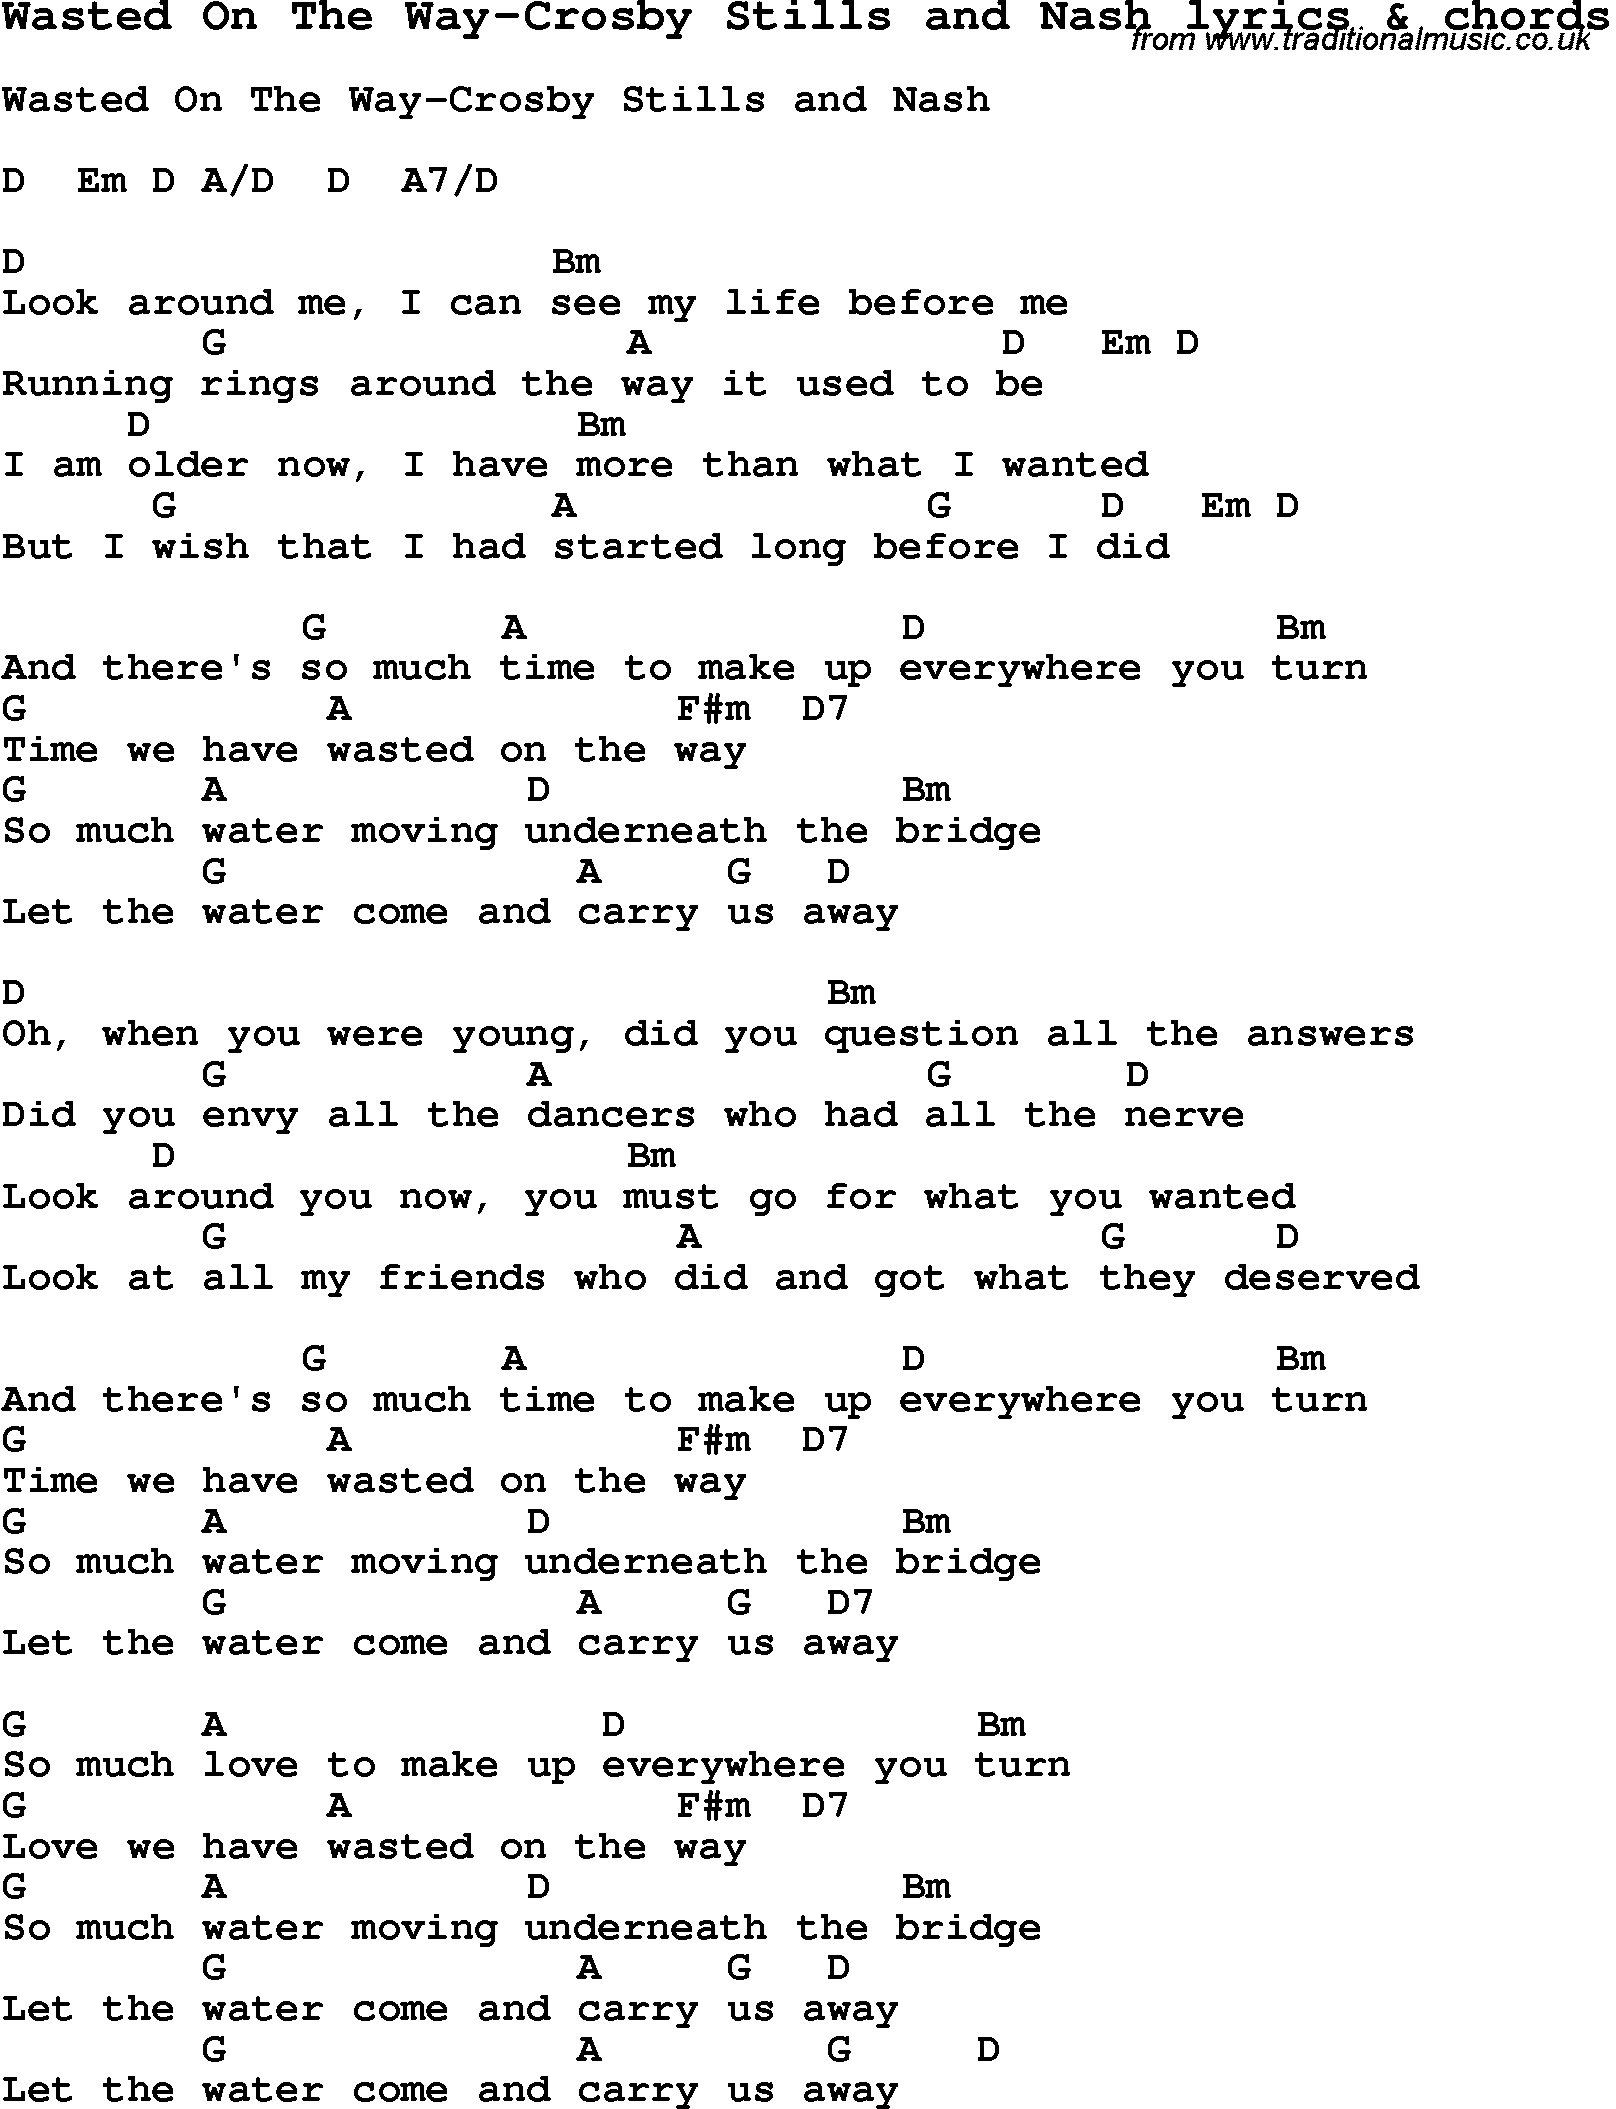 Love song lyrics forwasted on the way crosby stills and nash with love song lyrics for wasted on the way crosby stills and nash with chords hexwebz Image collections